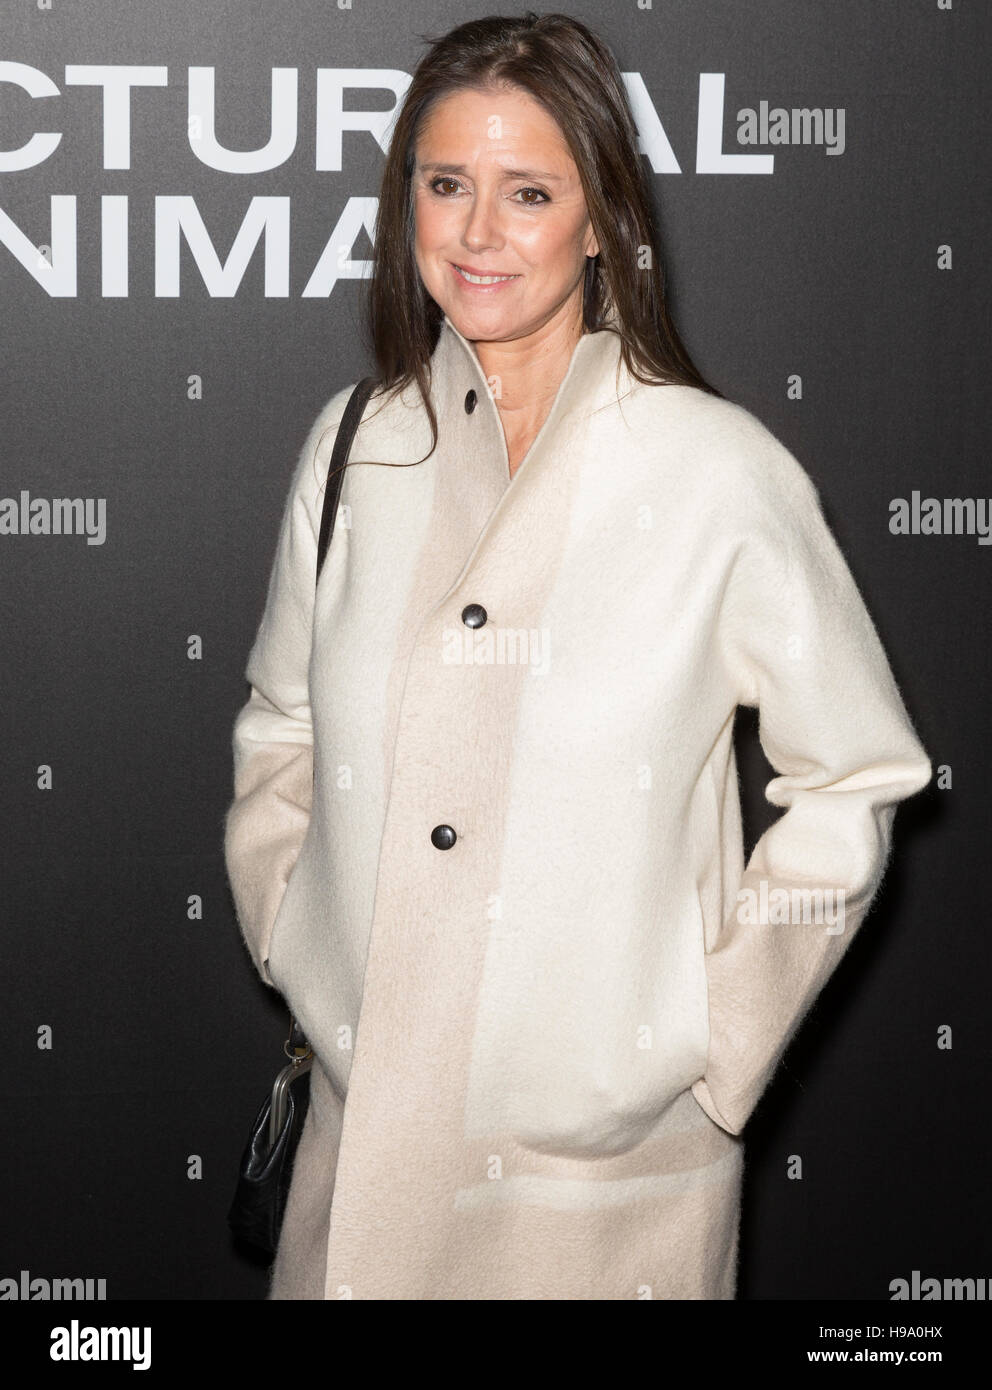 New York City, USA - November 17, 2016: Director Julie Taymor attends the 'Nocturnal Animals' New York premiere - Stock Image